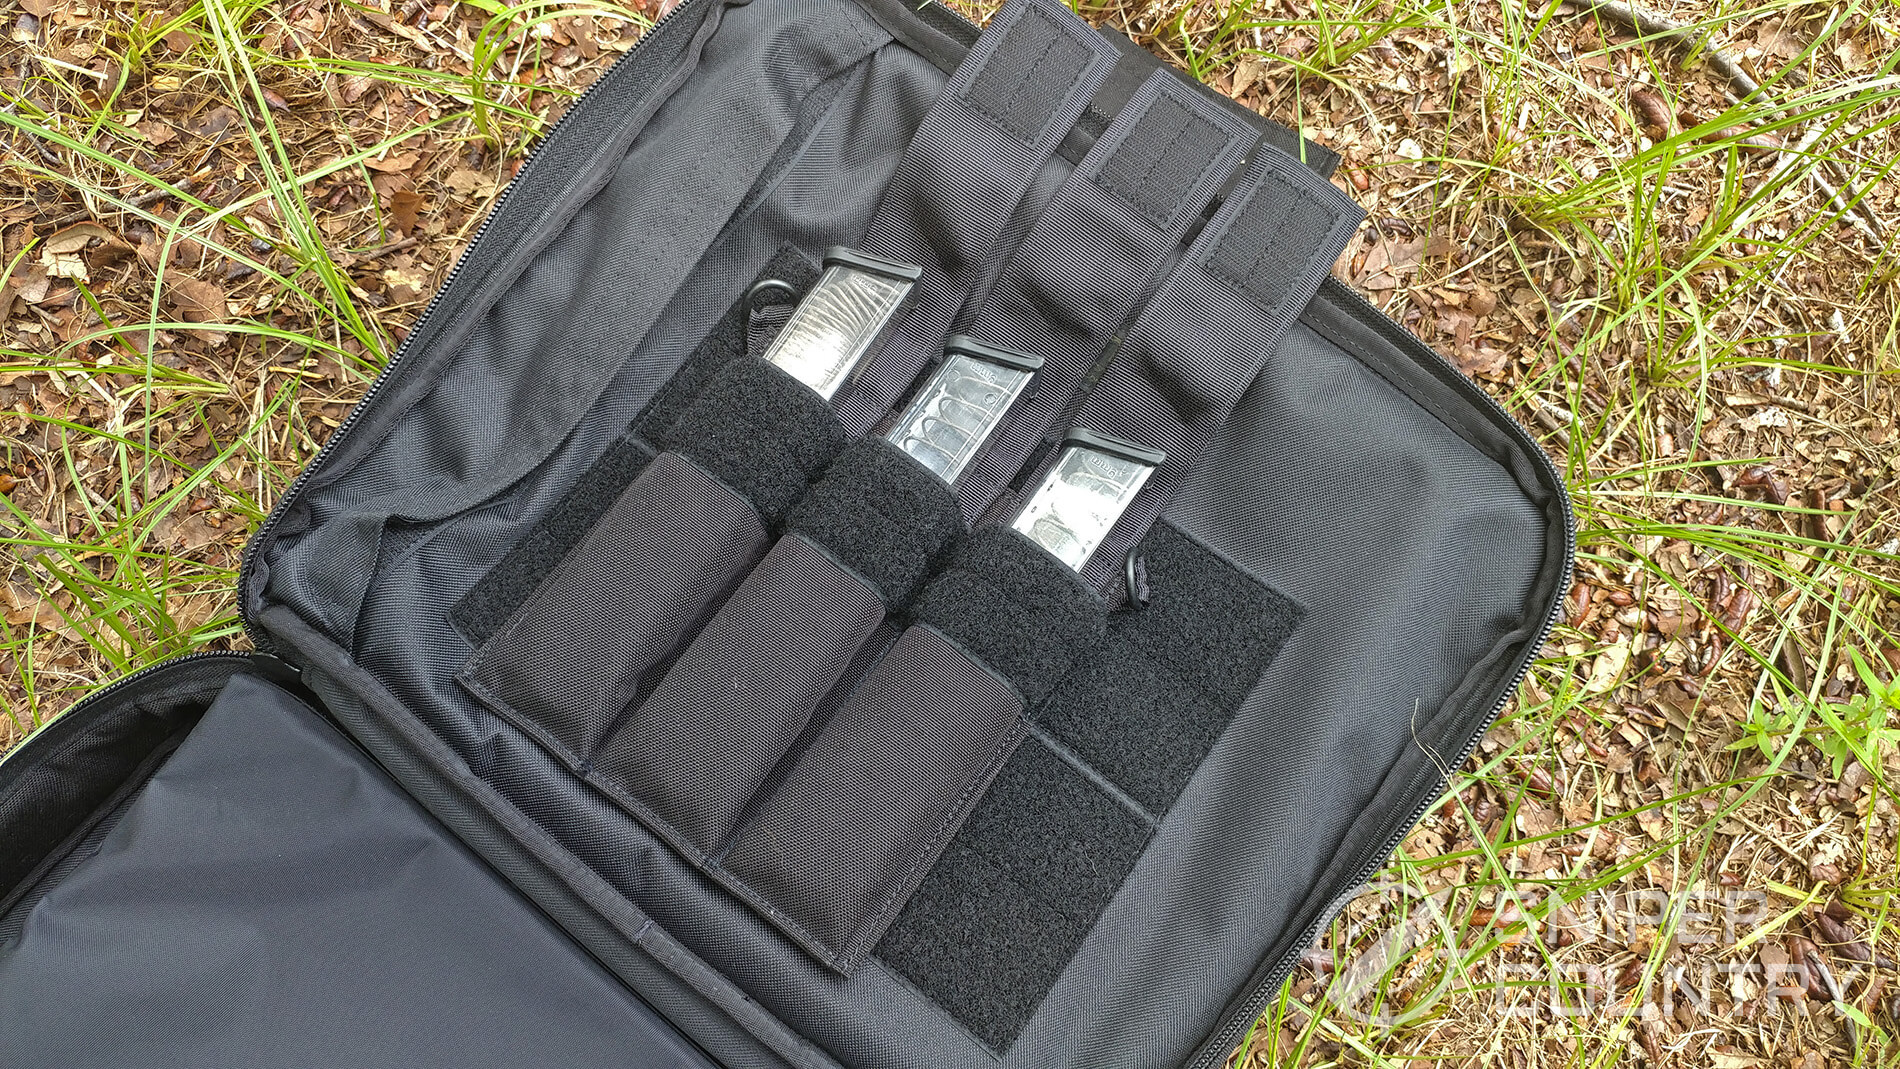 Elite Survival systems bag open